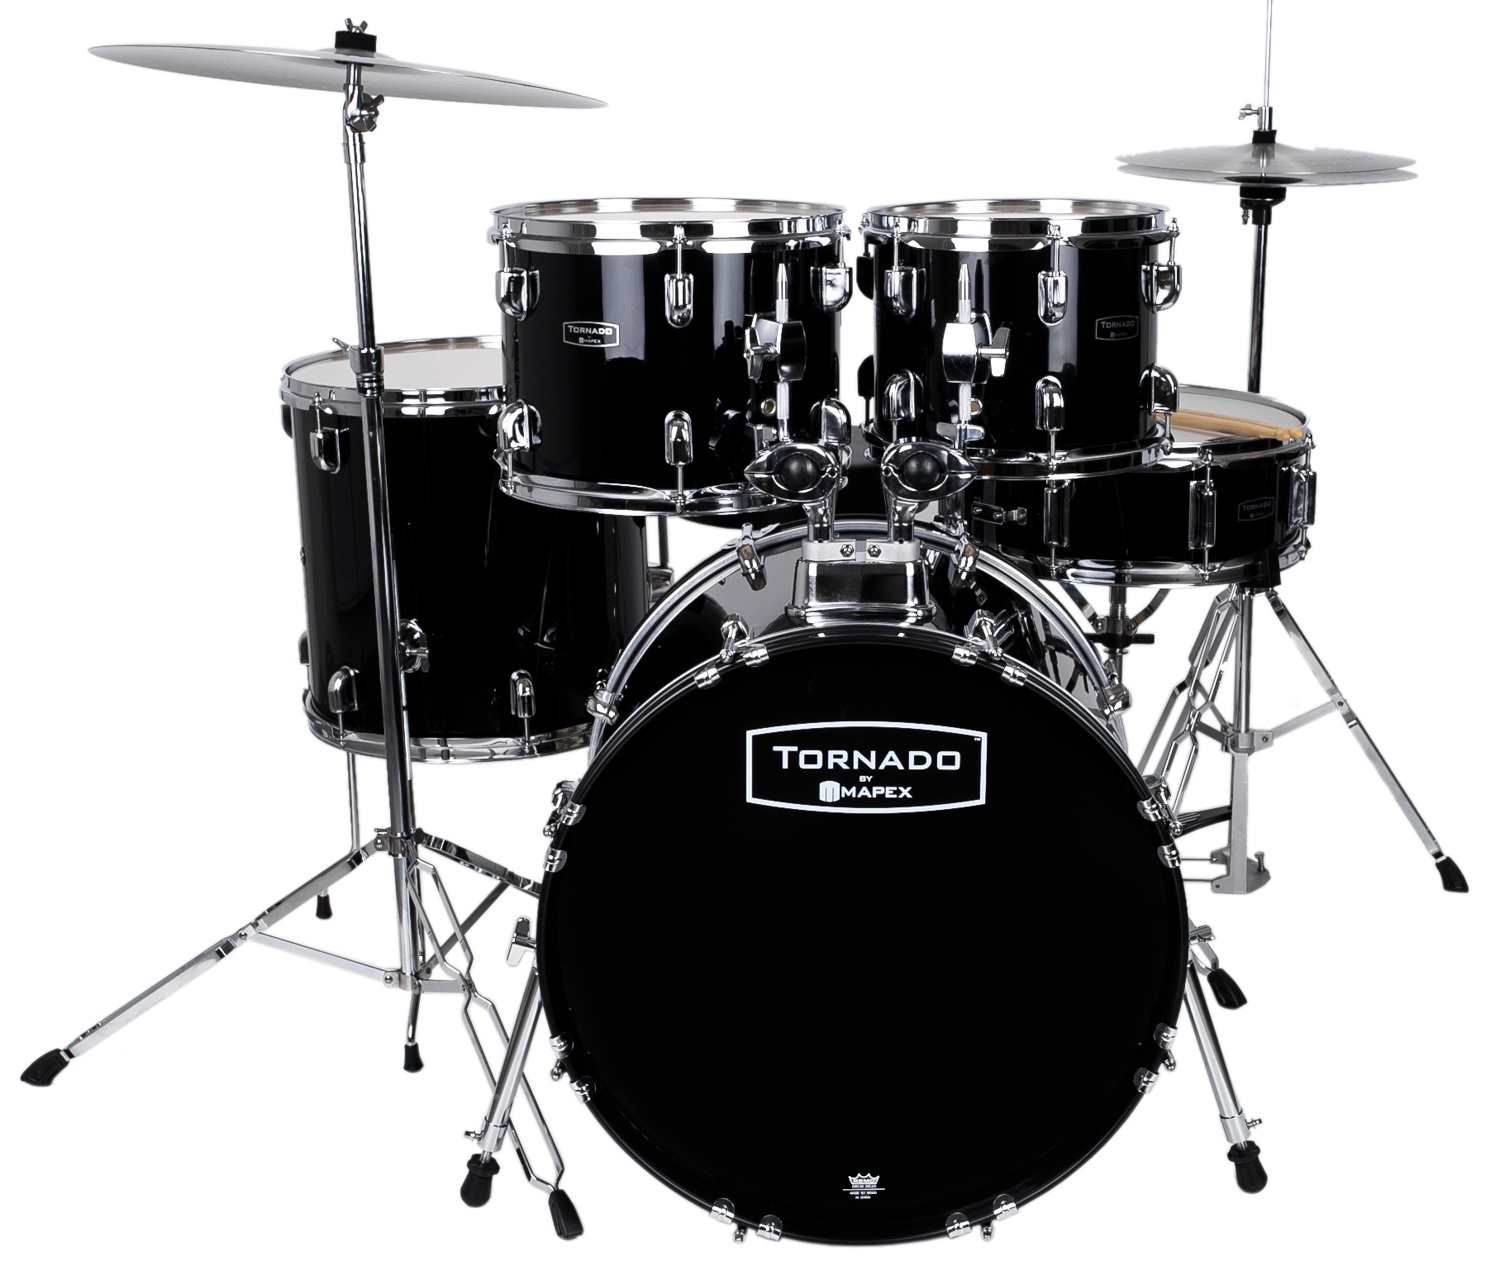 Tornado Studio Set Dark black NEW